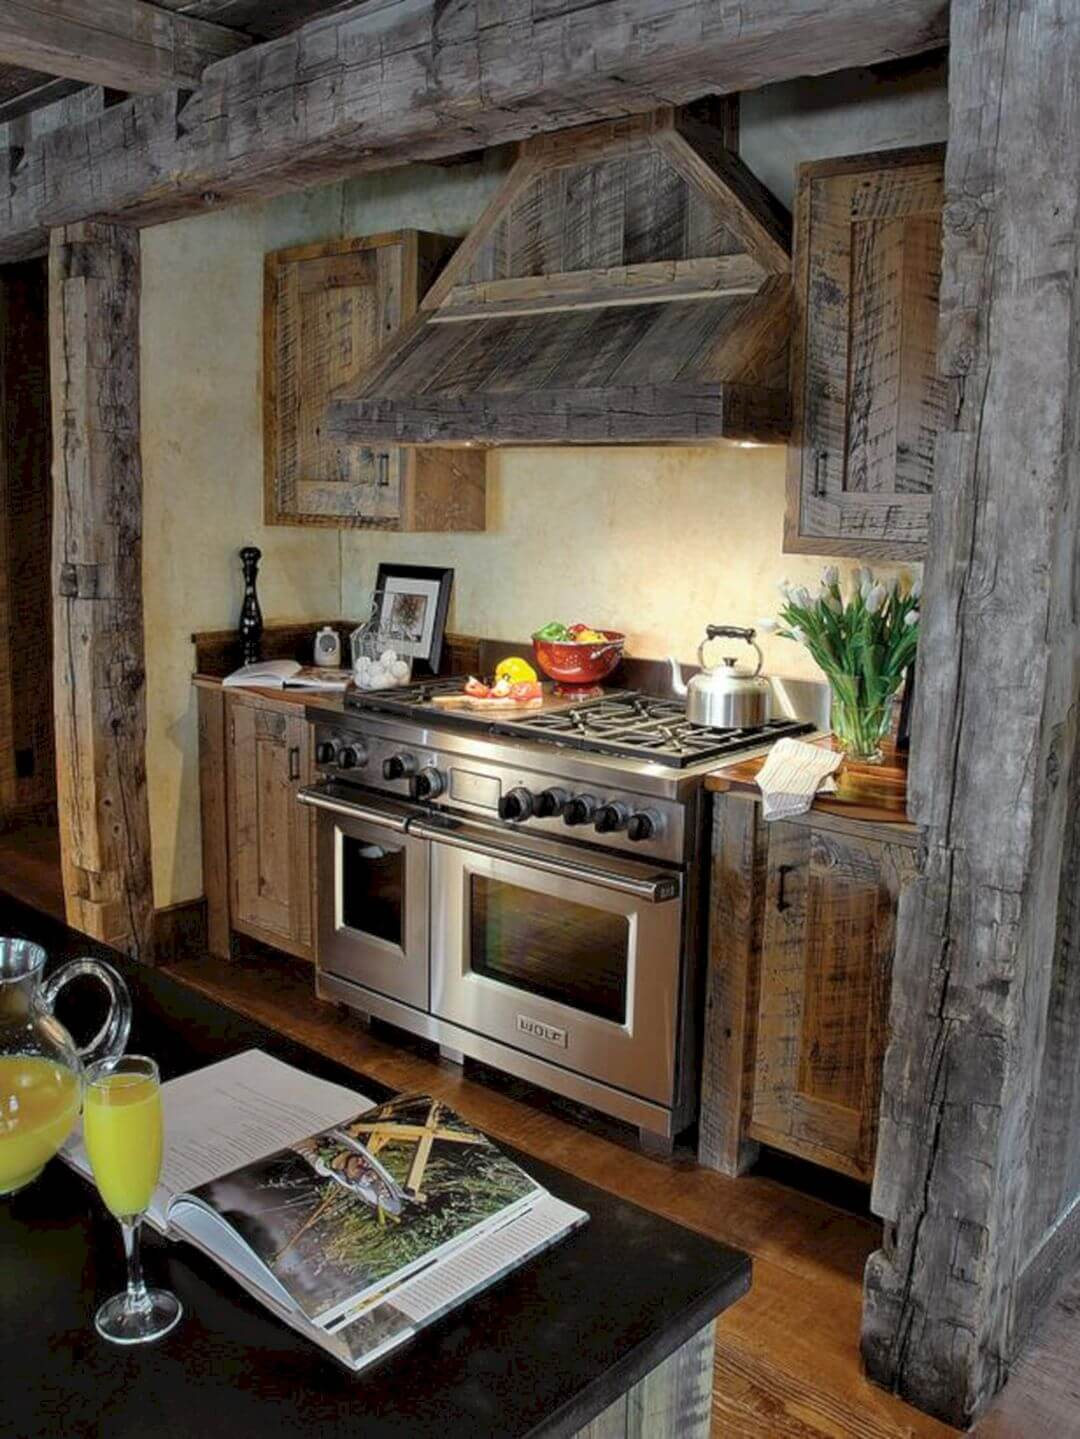 Natural Wood Beam Frames Stove Wall